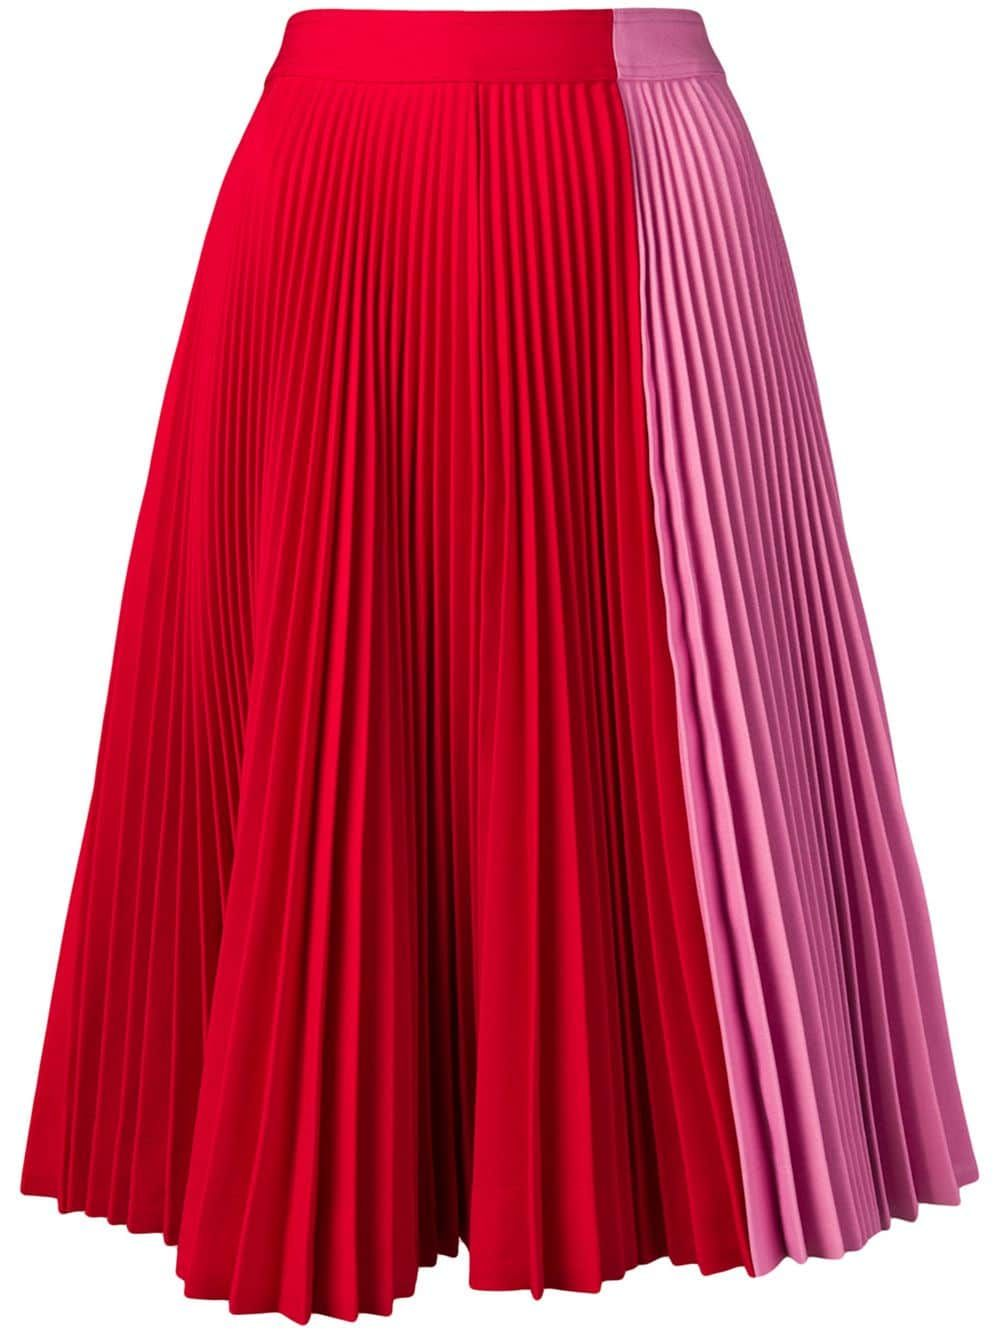 a05cd72531 CHILI RED Pleated Long Maxi Skirts | Skirts | Long maxi skirts, Skirts, Red  skirts